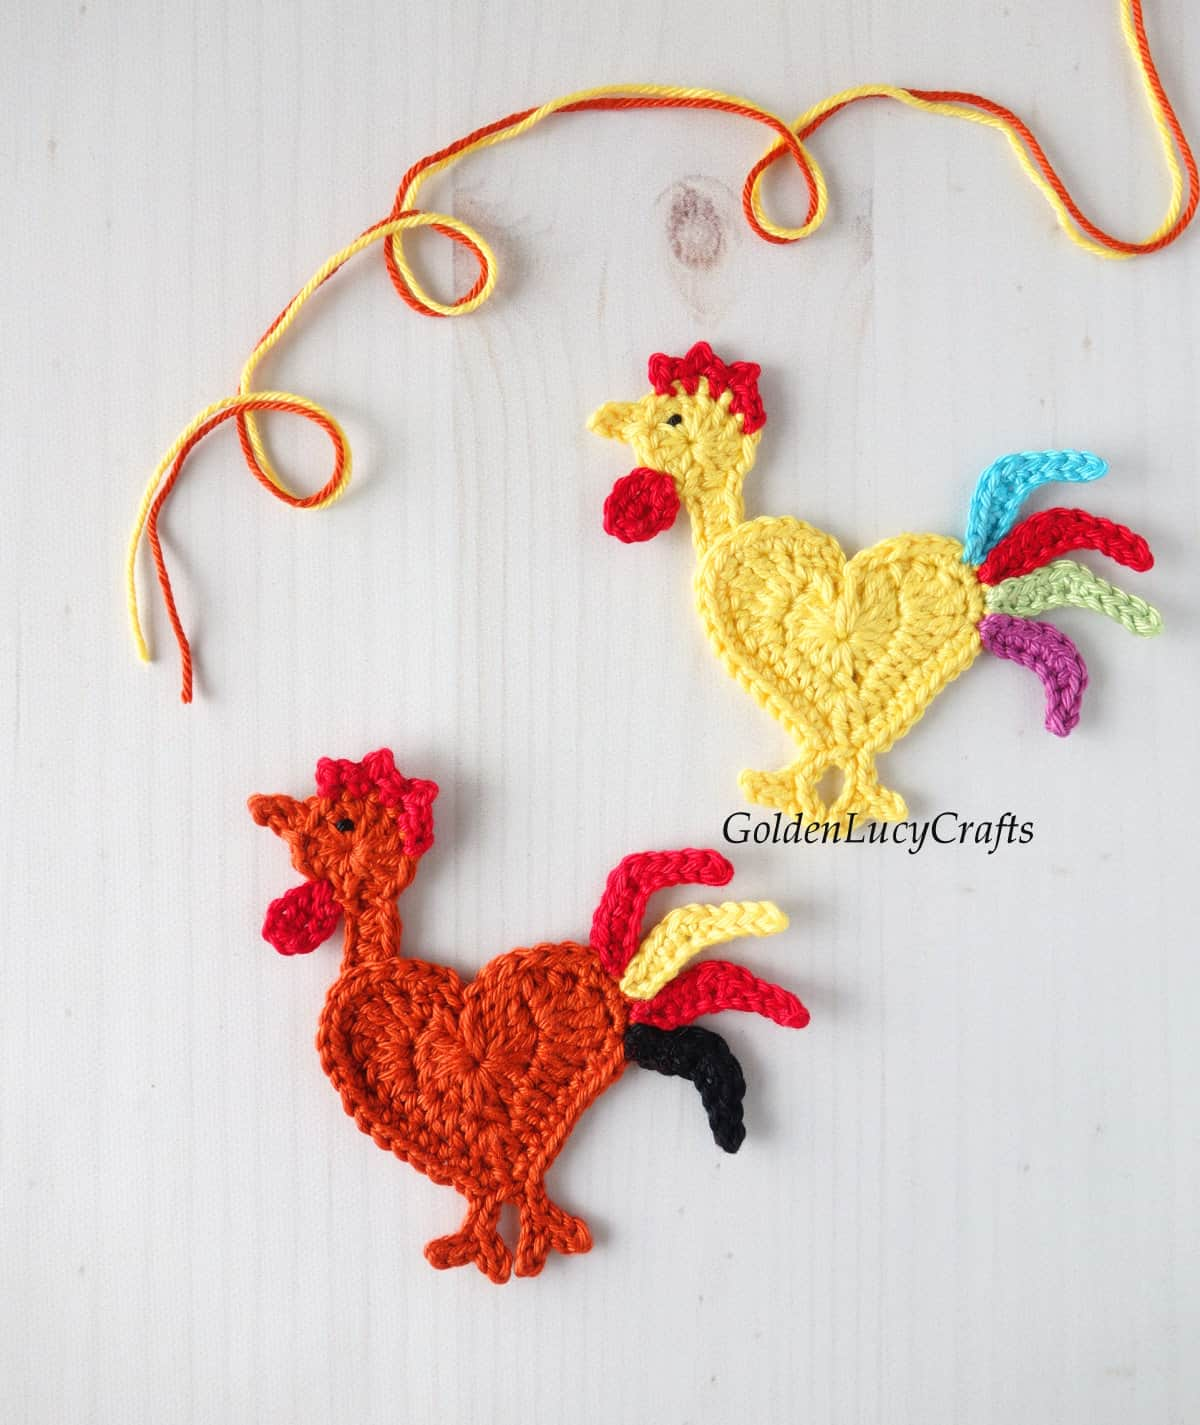 Two crocheted rooster appliques.